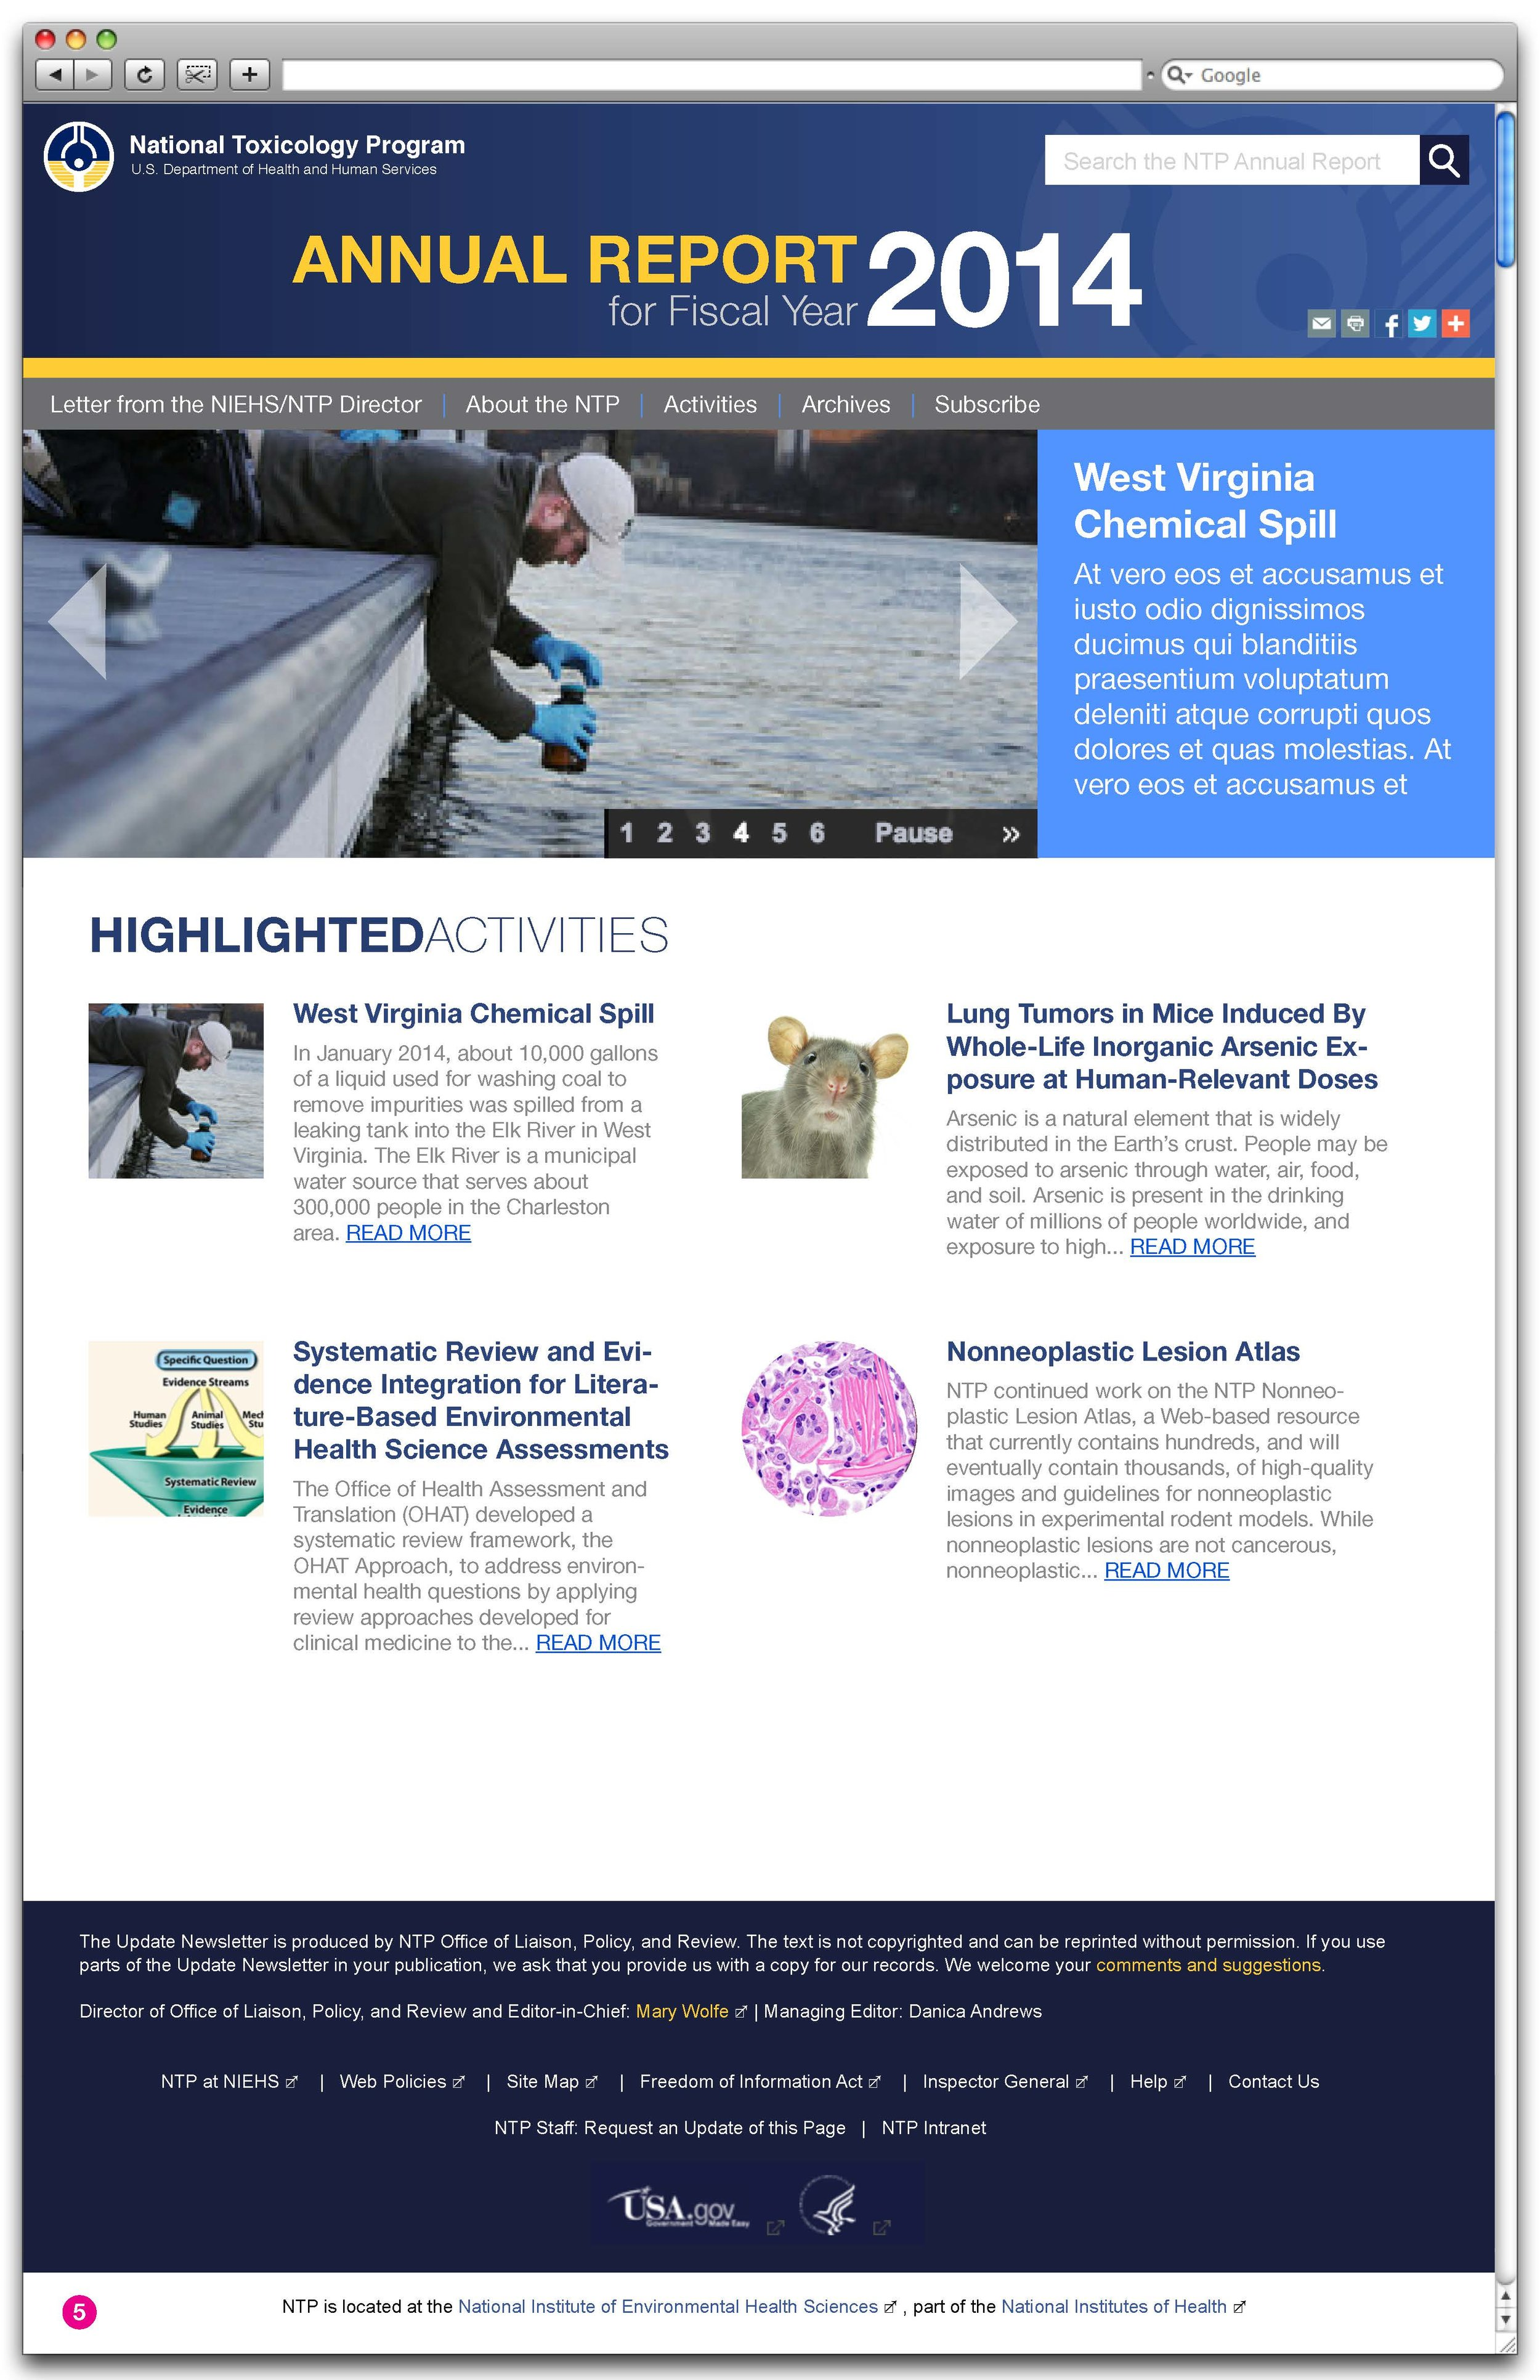 2332_annual_report_layout-WEB-v001_Page_04.jpg